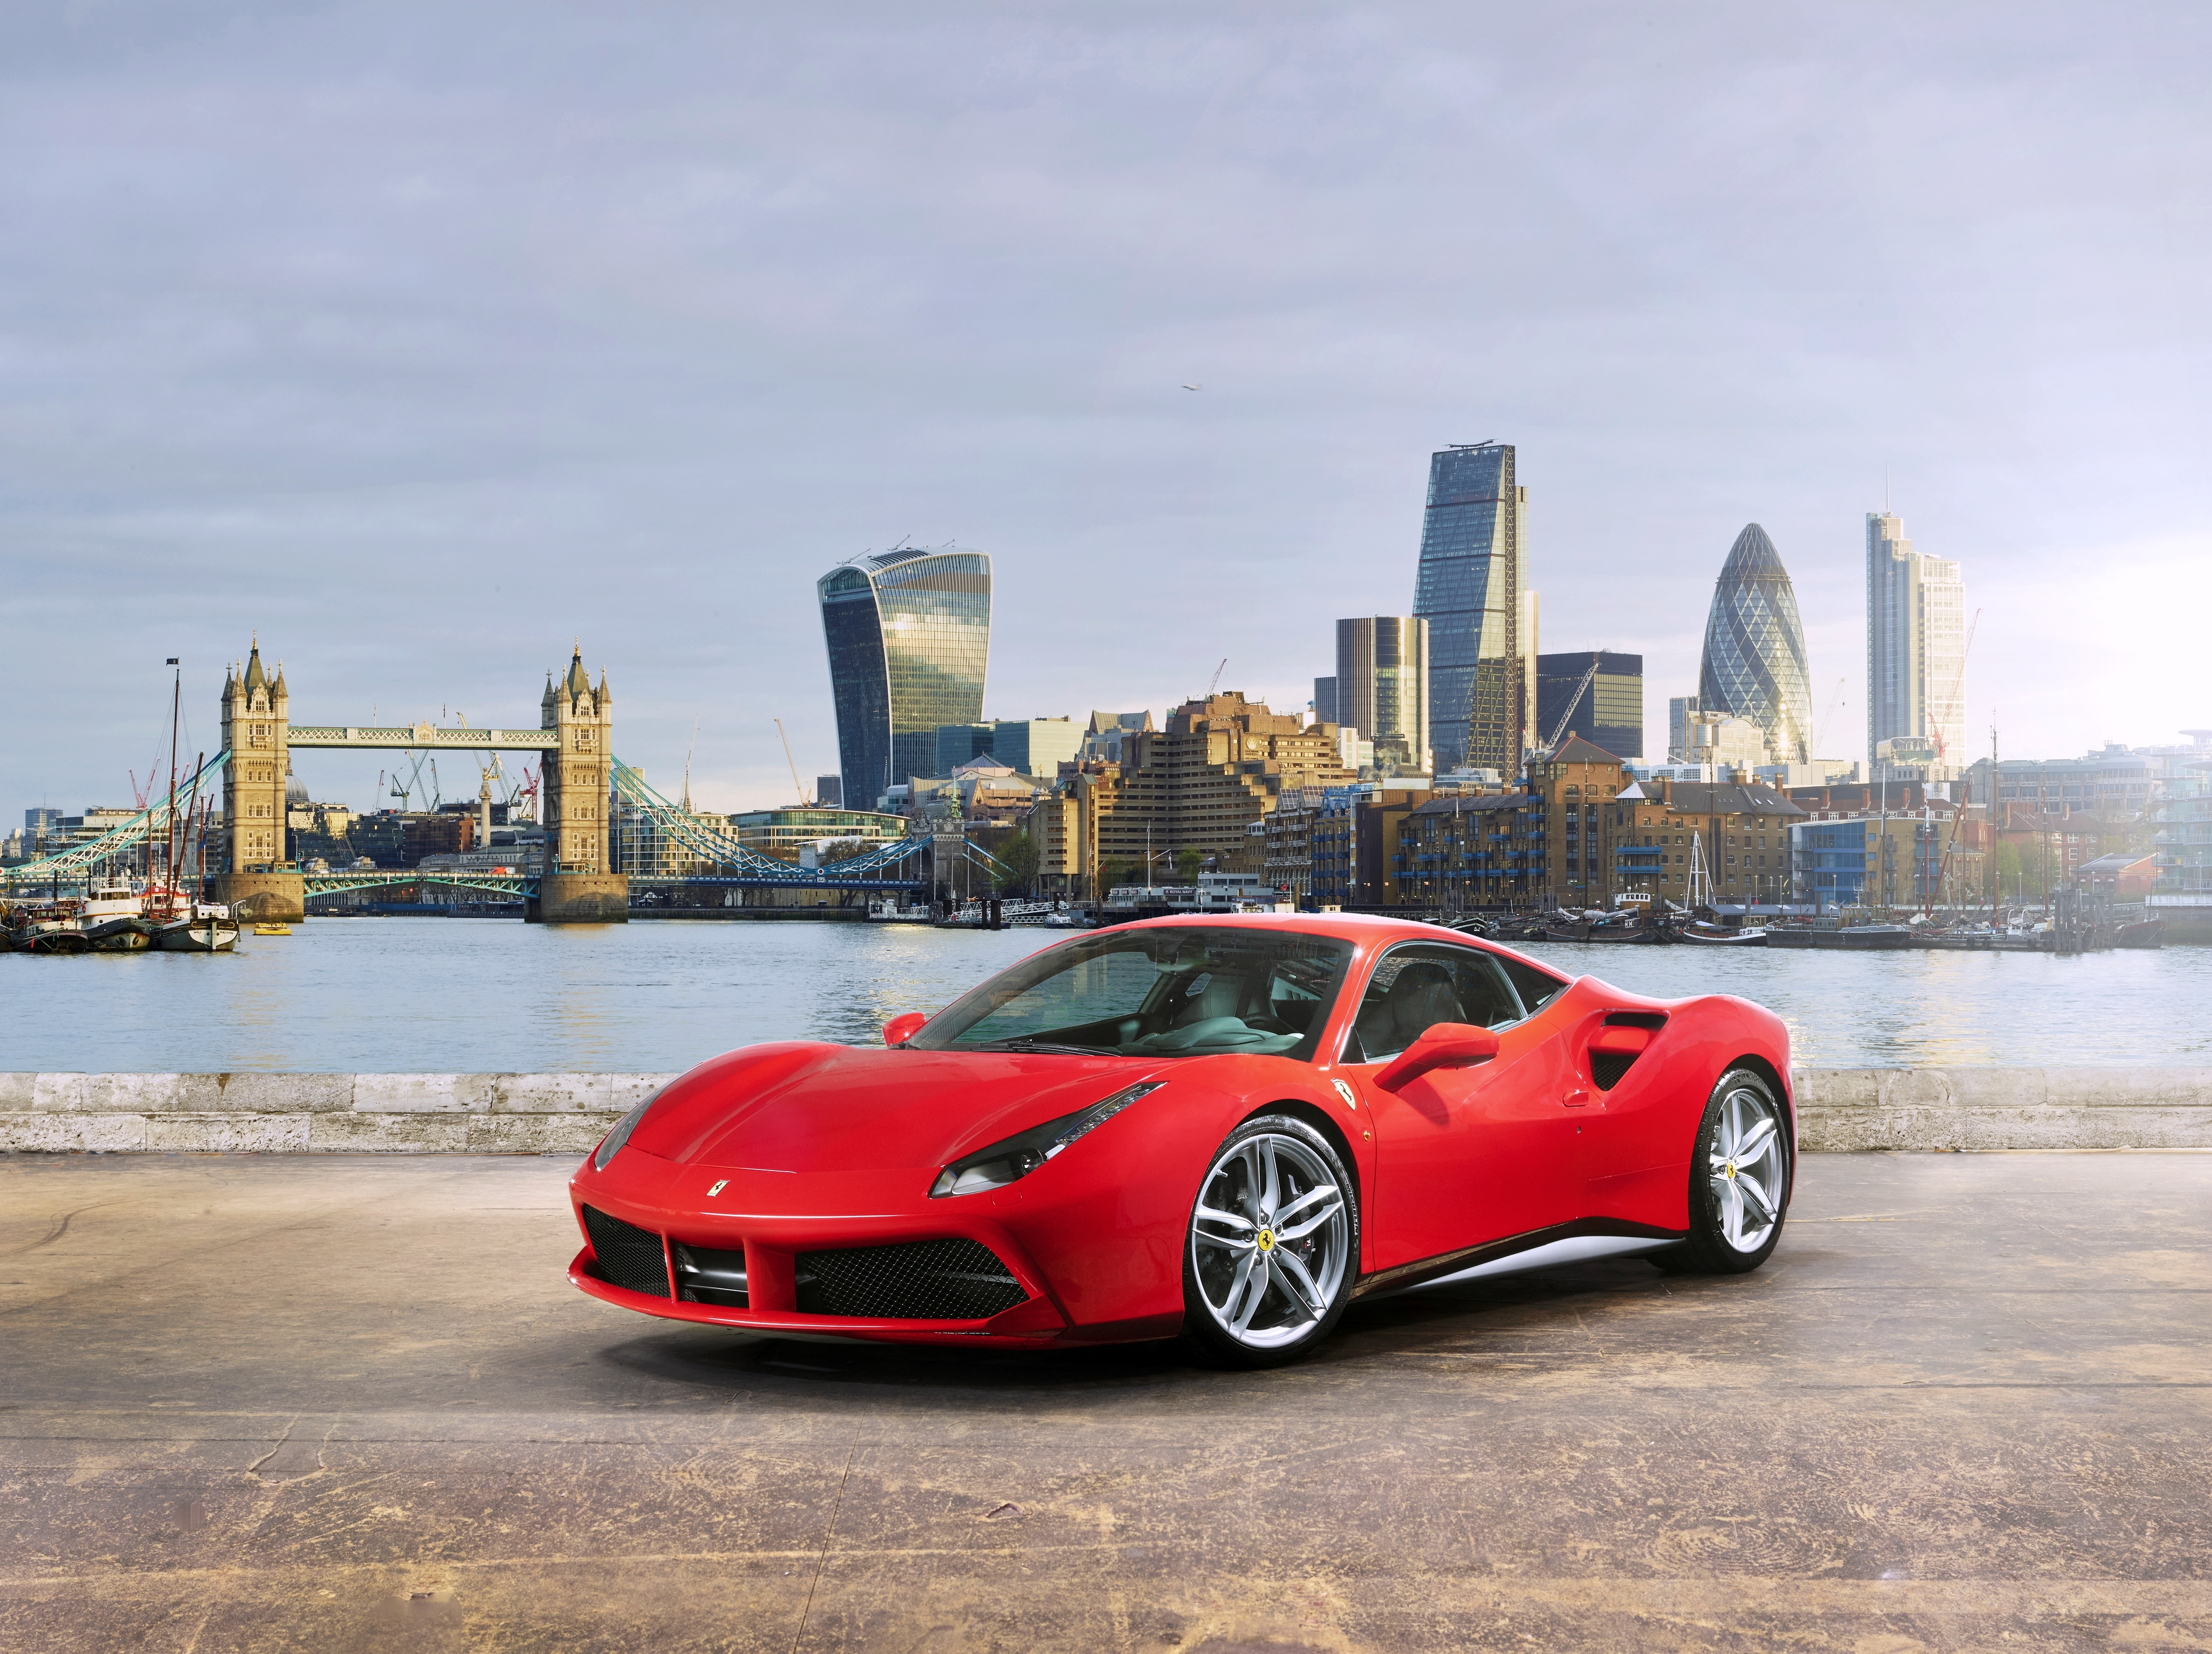 102052 download wallpaper Cars, Ferrari, 488 Gtb, Side View screensavers and pictures for free